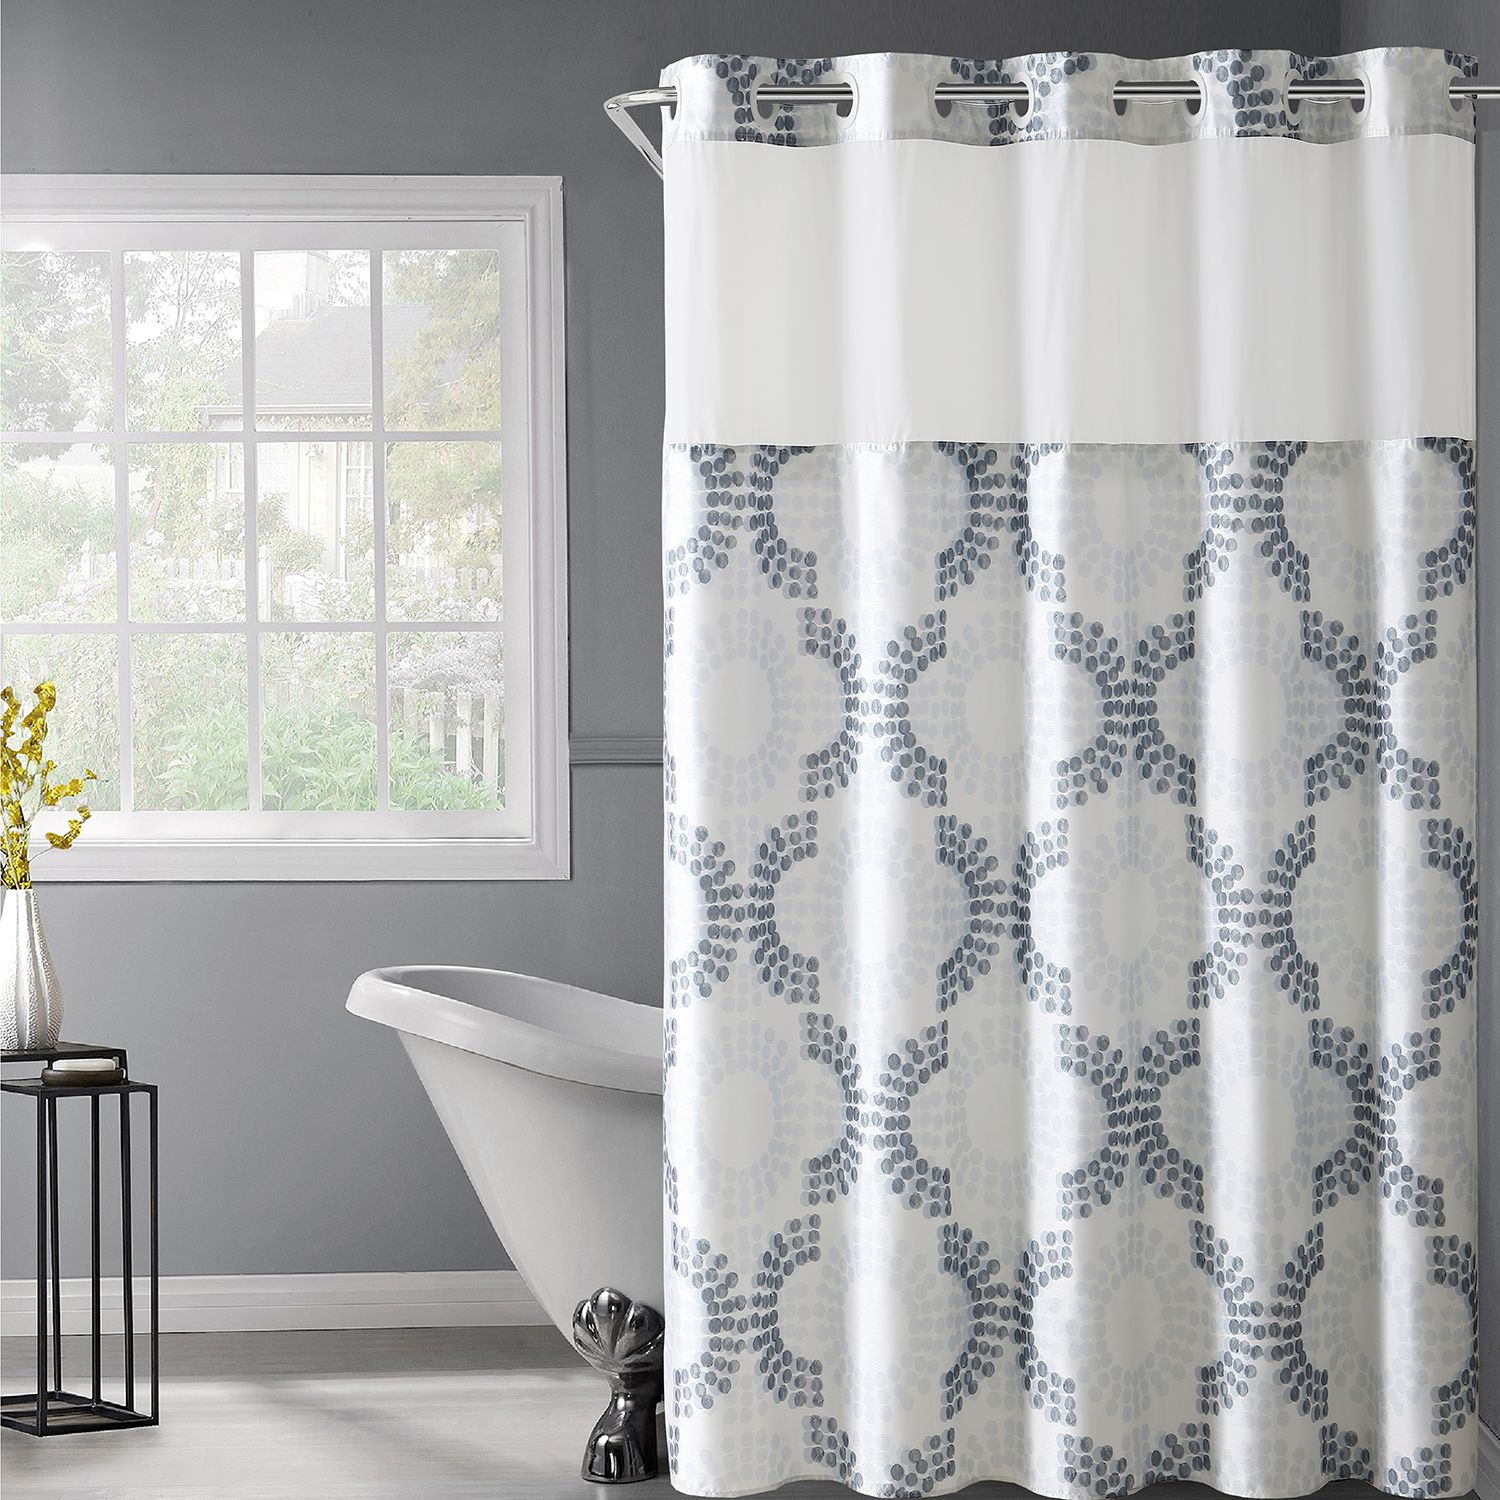 Hookless Stamped Gate Shower Curtain U0026 Snap In Liner